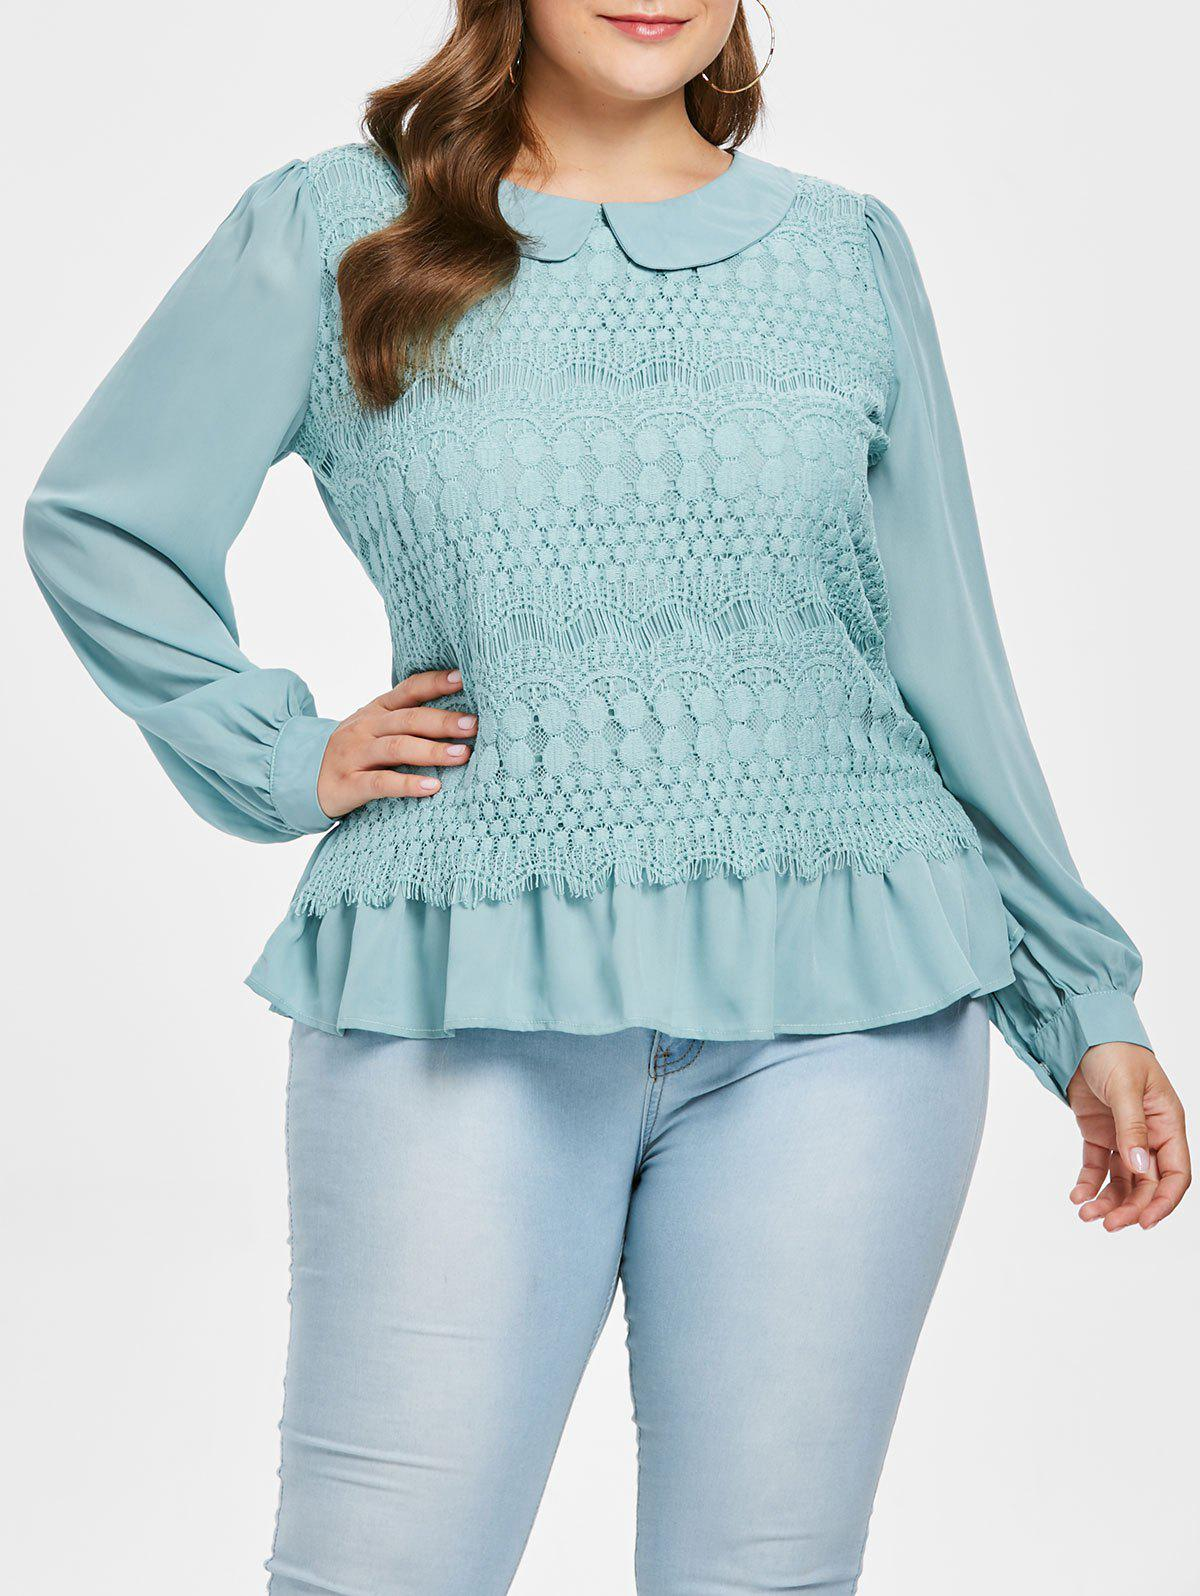 7622cd8a7b0 40% OFF   2019 Plus Size Peter Pan Collar Lace Blouse